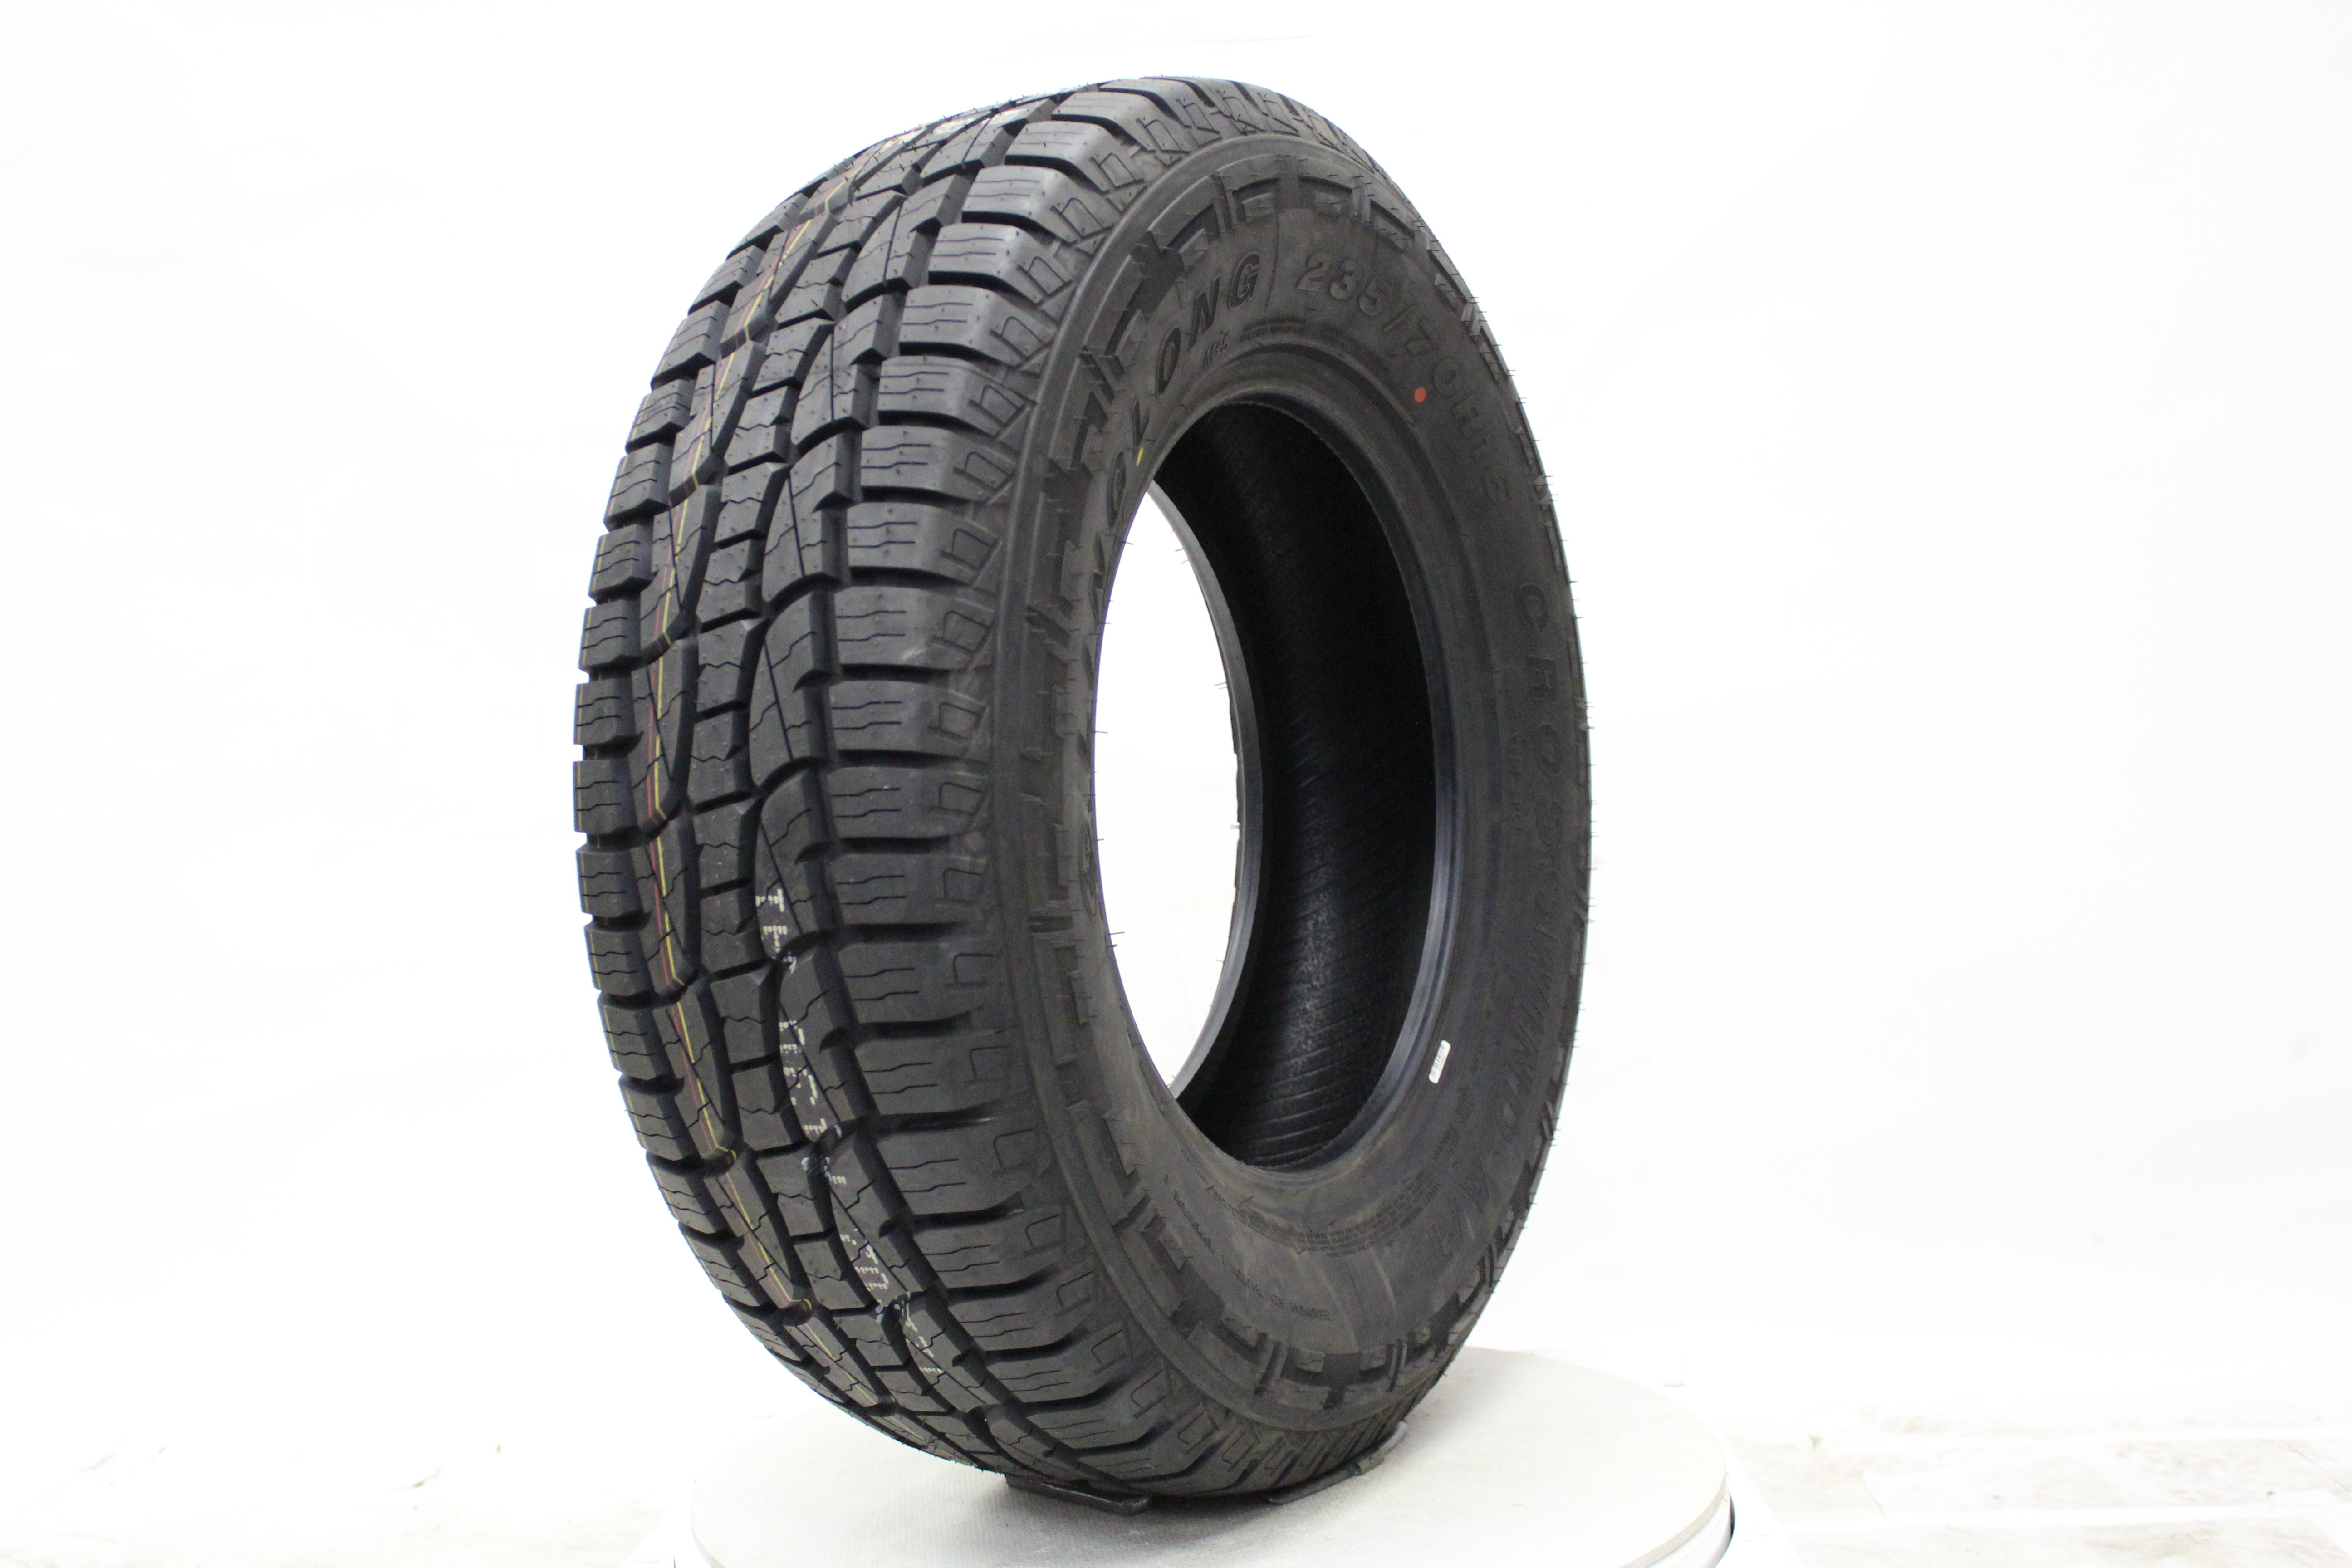 P275 65r18 Tires >> Crosswind At P275 65r18 Tires Lowest Prices Extreme Wheels